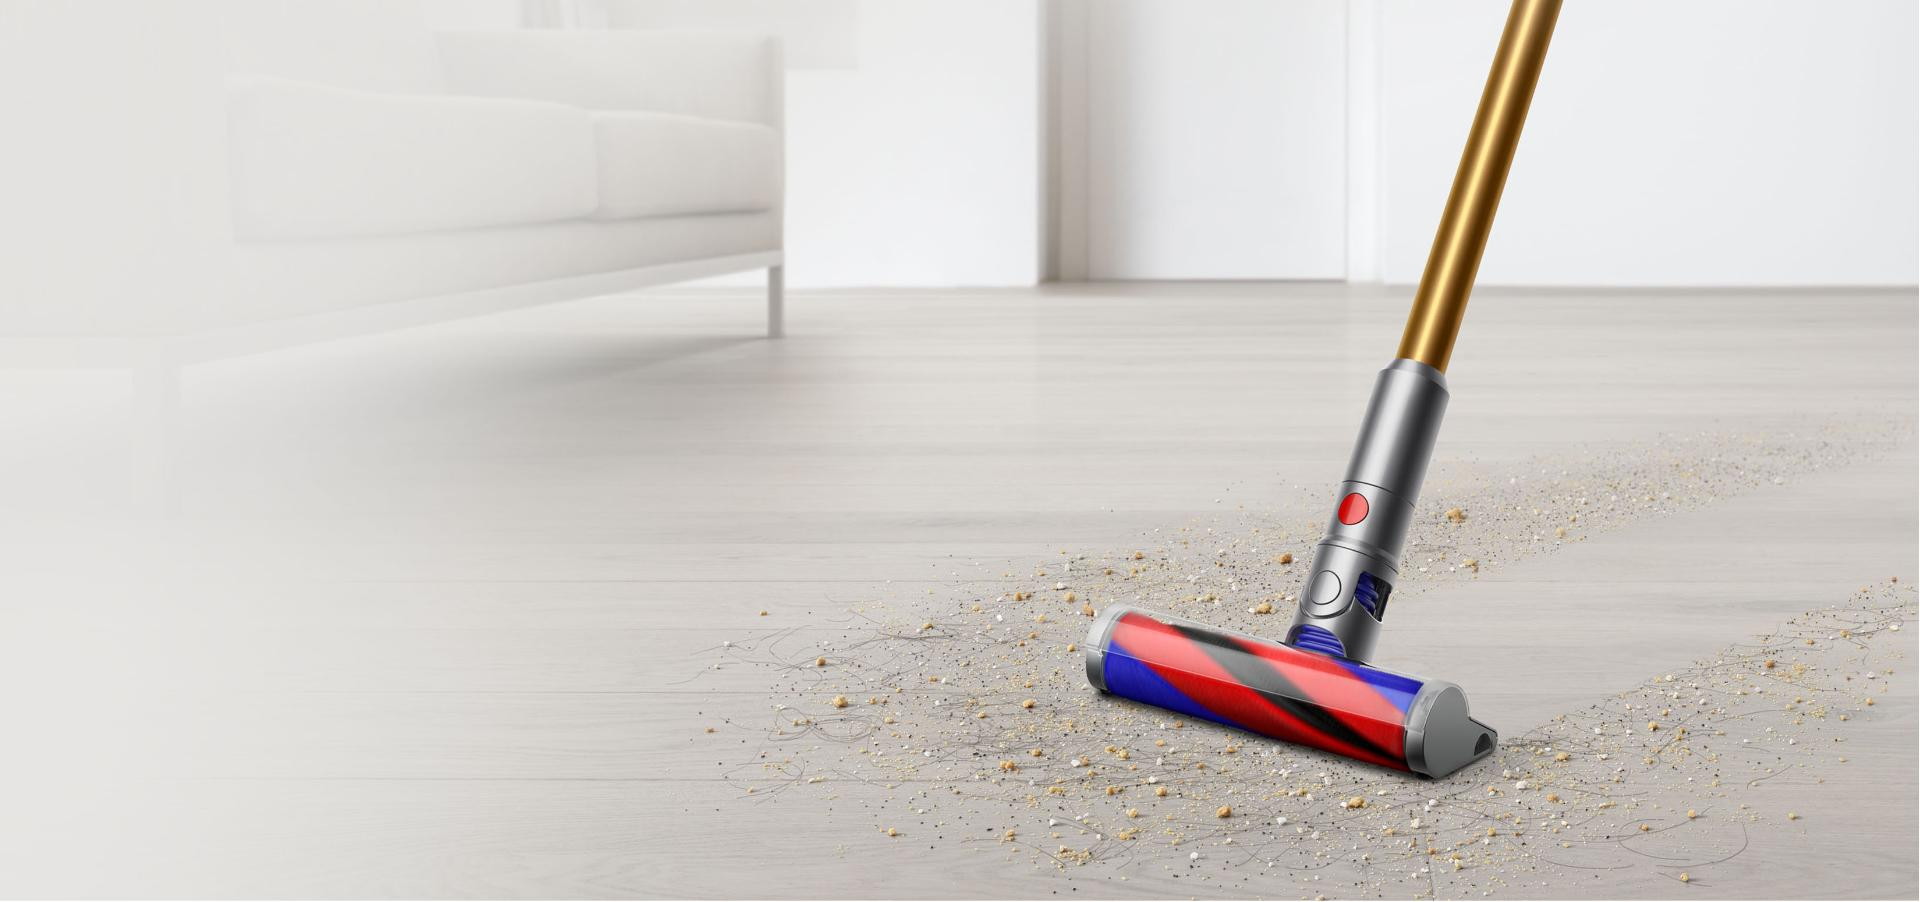 Dyson Micro 1.5kg cleaning debris from hard floor